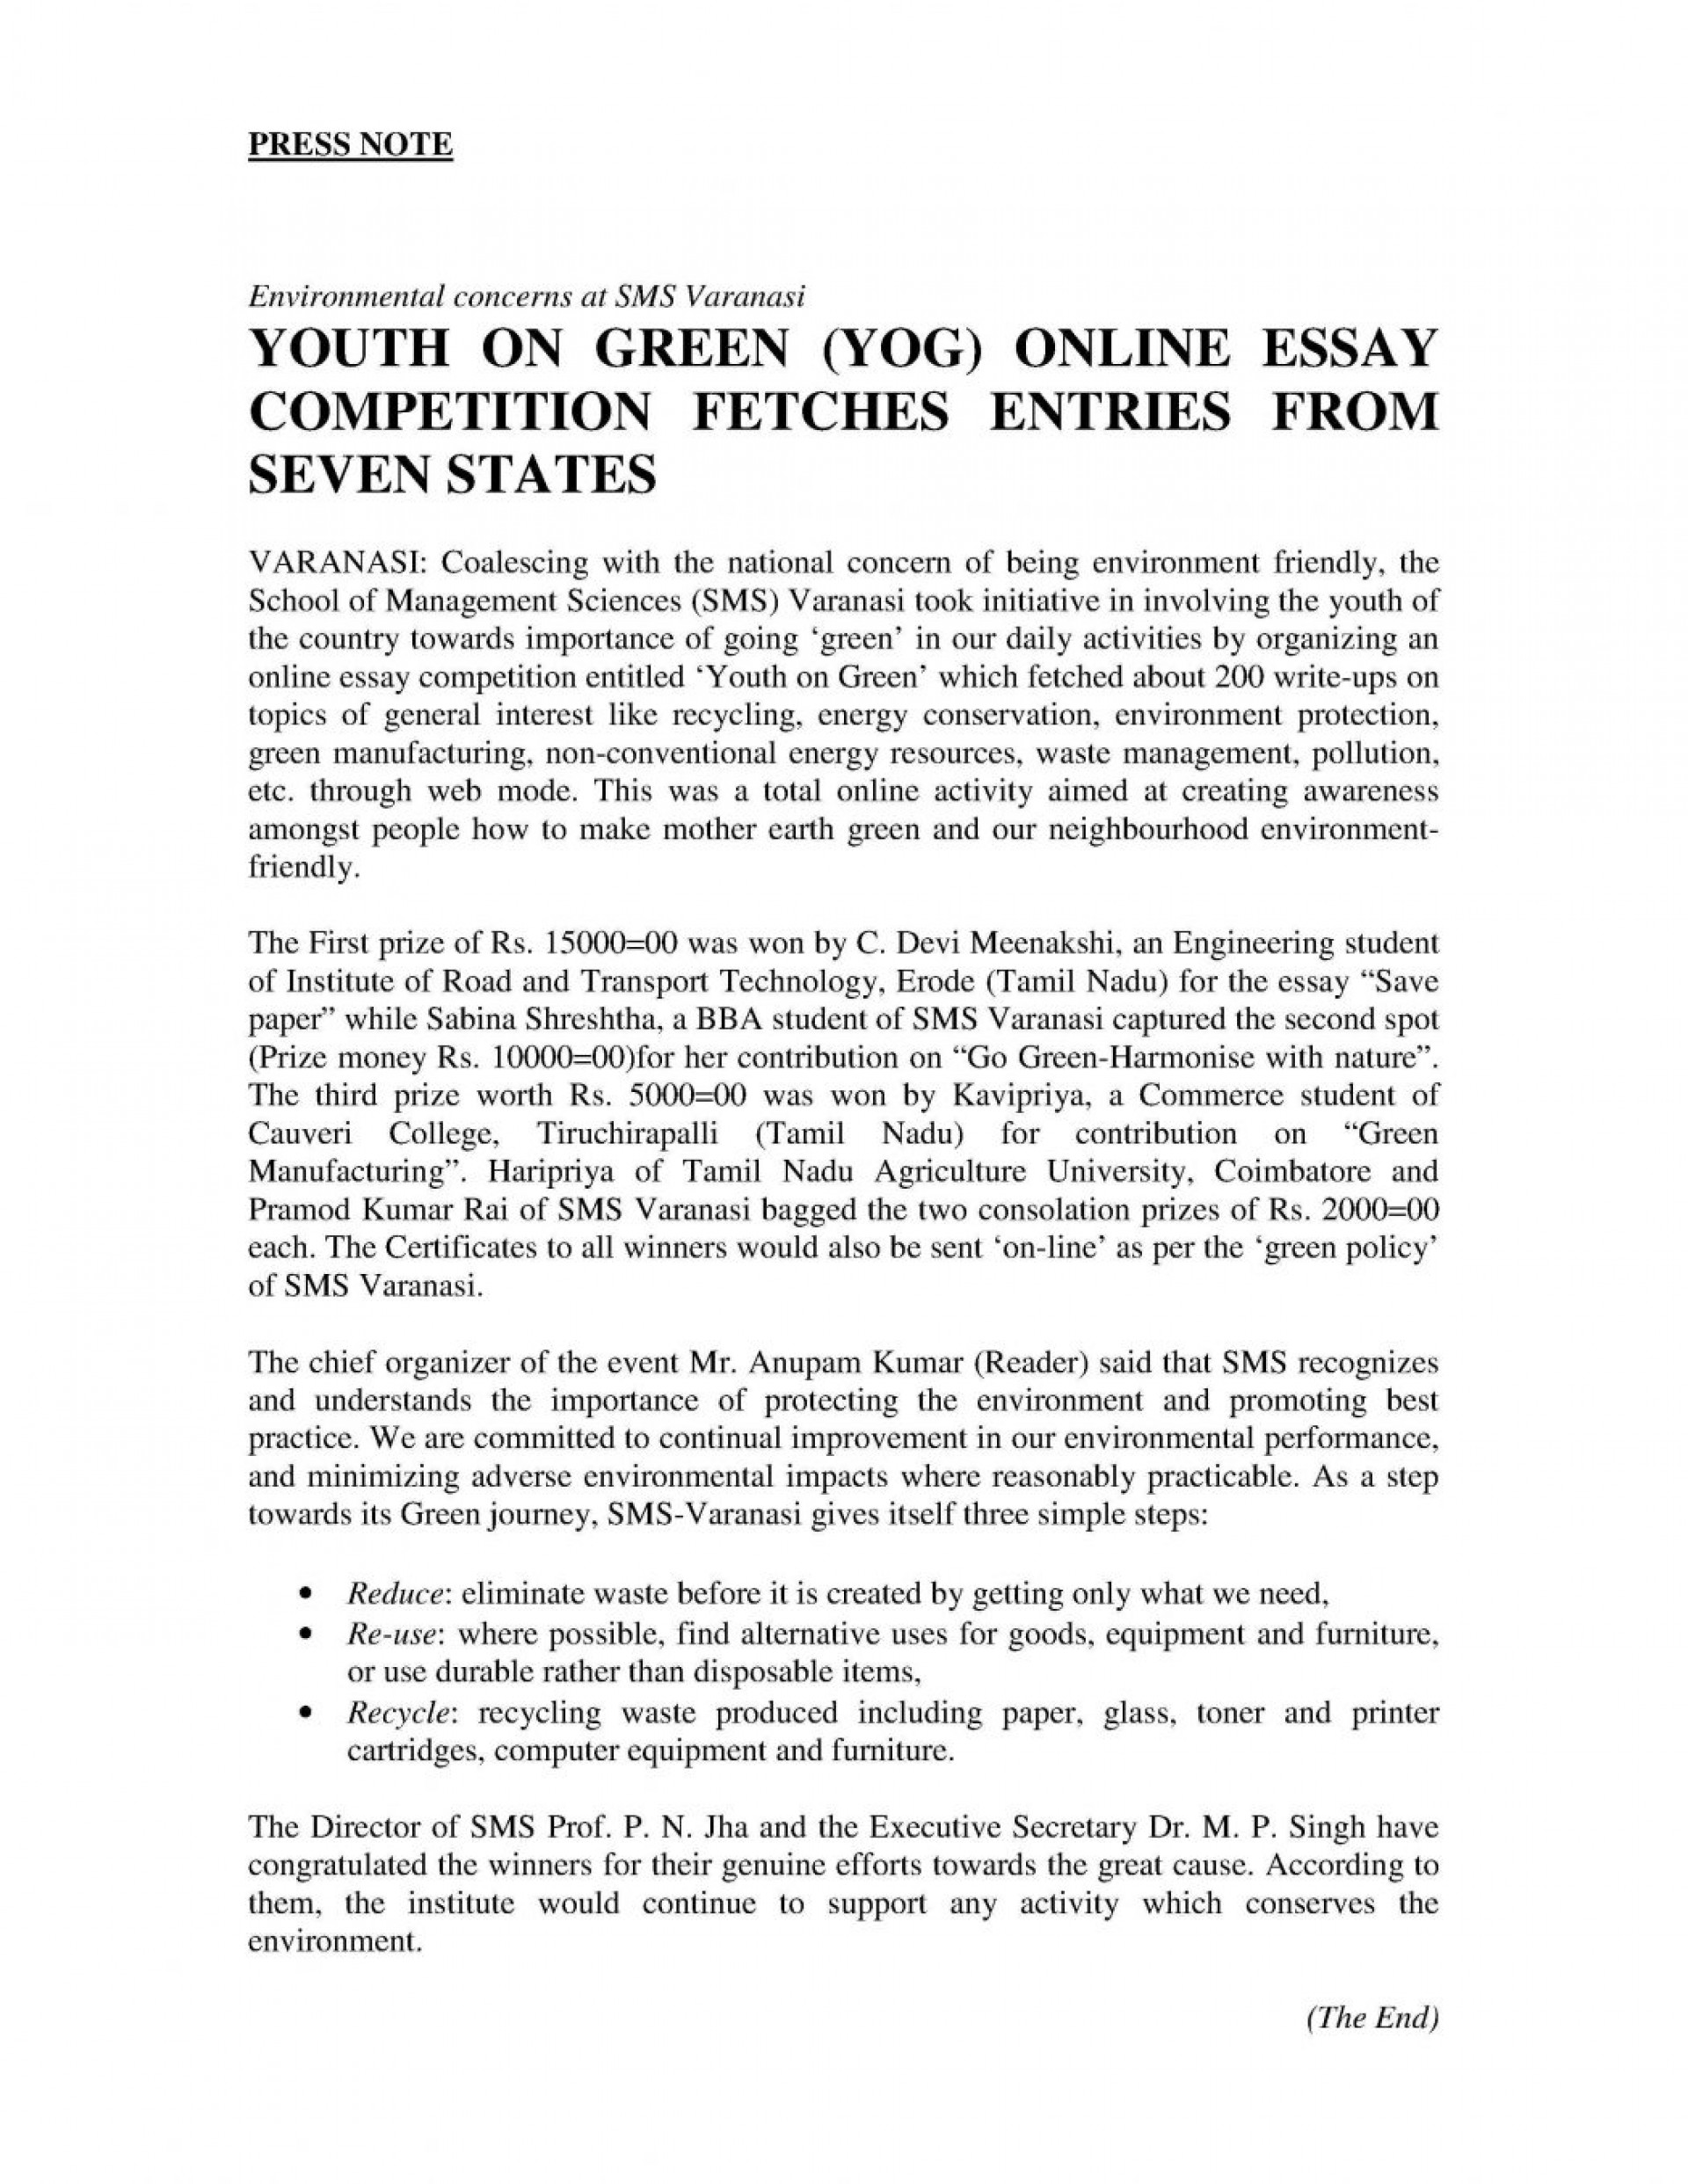 020 Best Essays For College Essay On Good Habits How Tot Application Online Yog Press Re About Yourself Examples Your Background Failure Prompt Off Hook 1048x1356 Example Amazing To Start An Argumentative A Book With Definition Life 1920